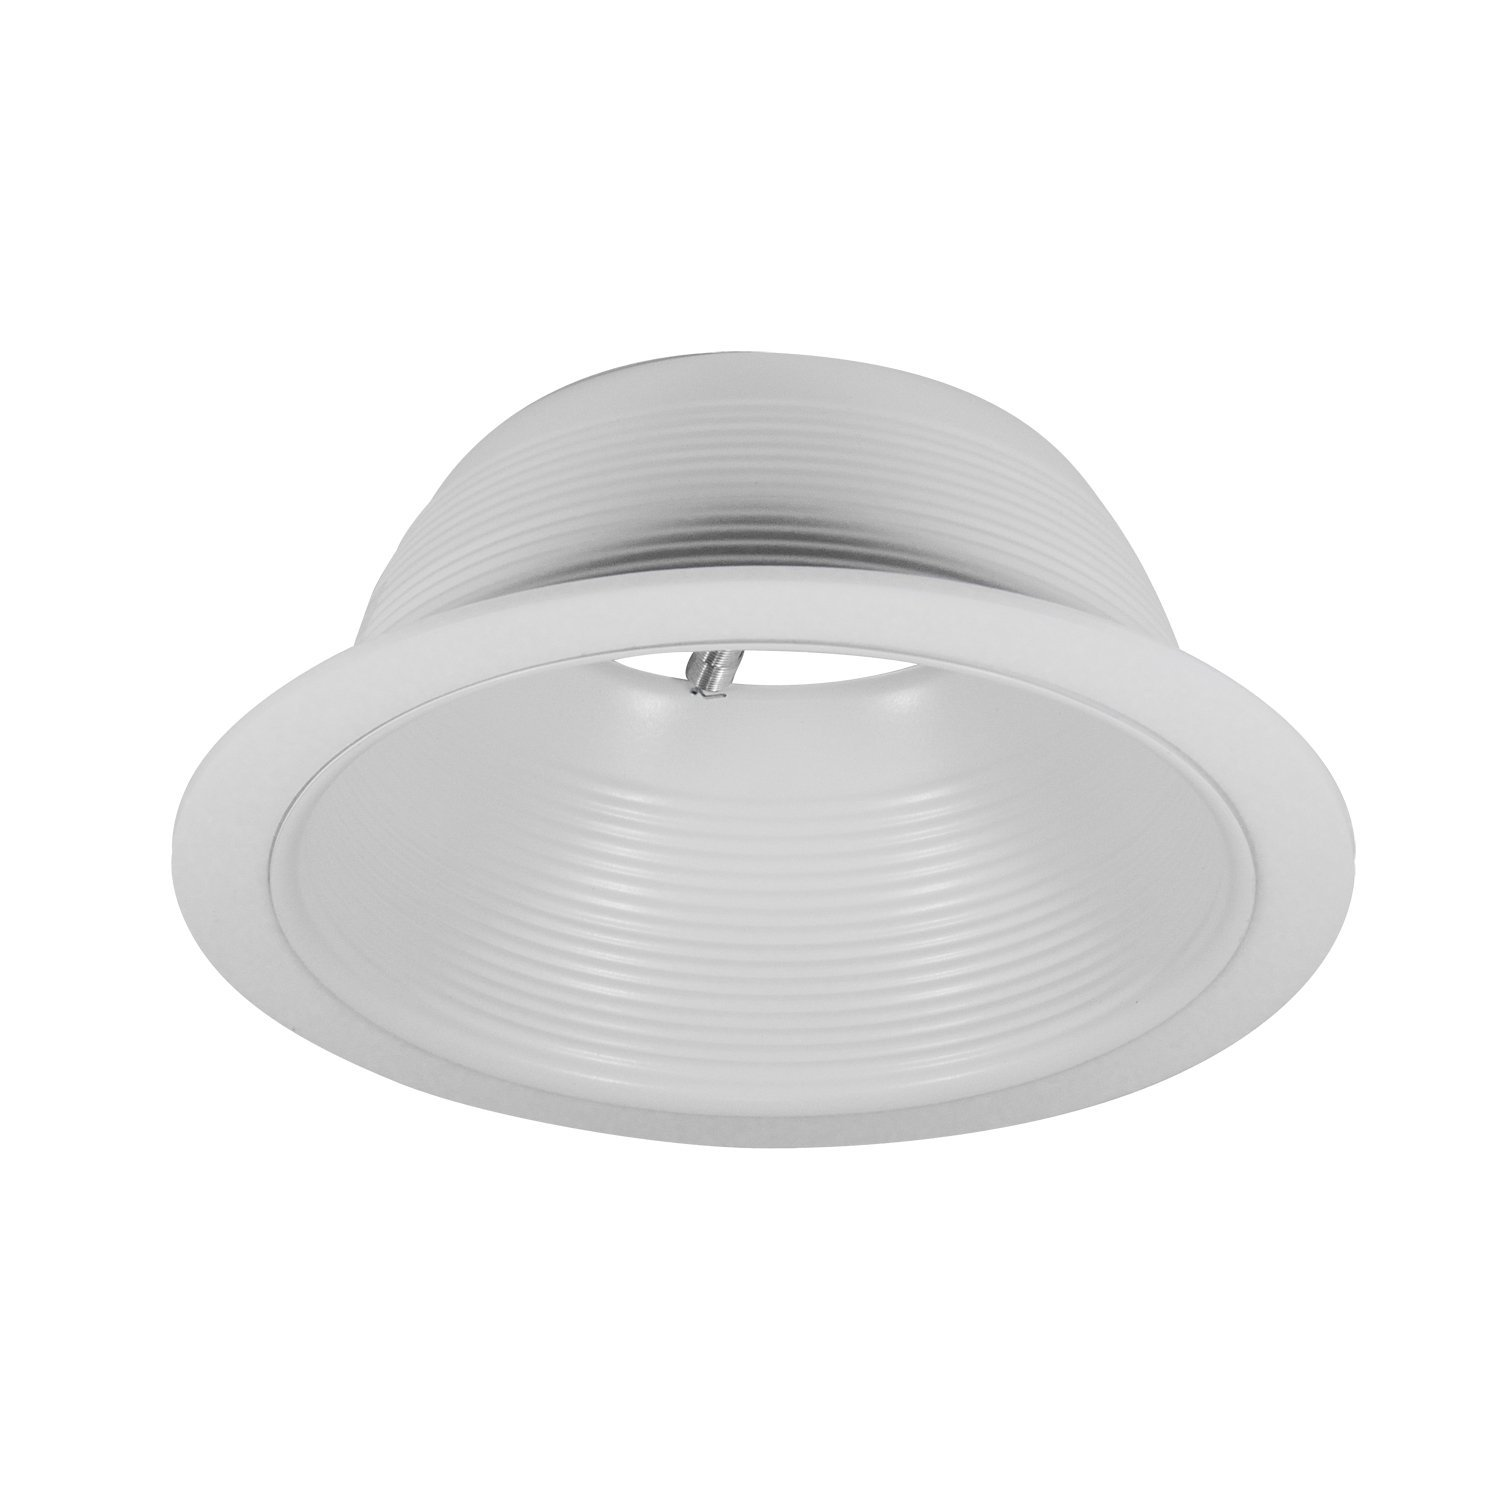 6 white baffle trim with white ring for 6 recessed can lighting 6 white baffle trim with white ring for 6 recessed can lighting replaces br30par30r30 amazon arubaitofo Choice Image